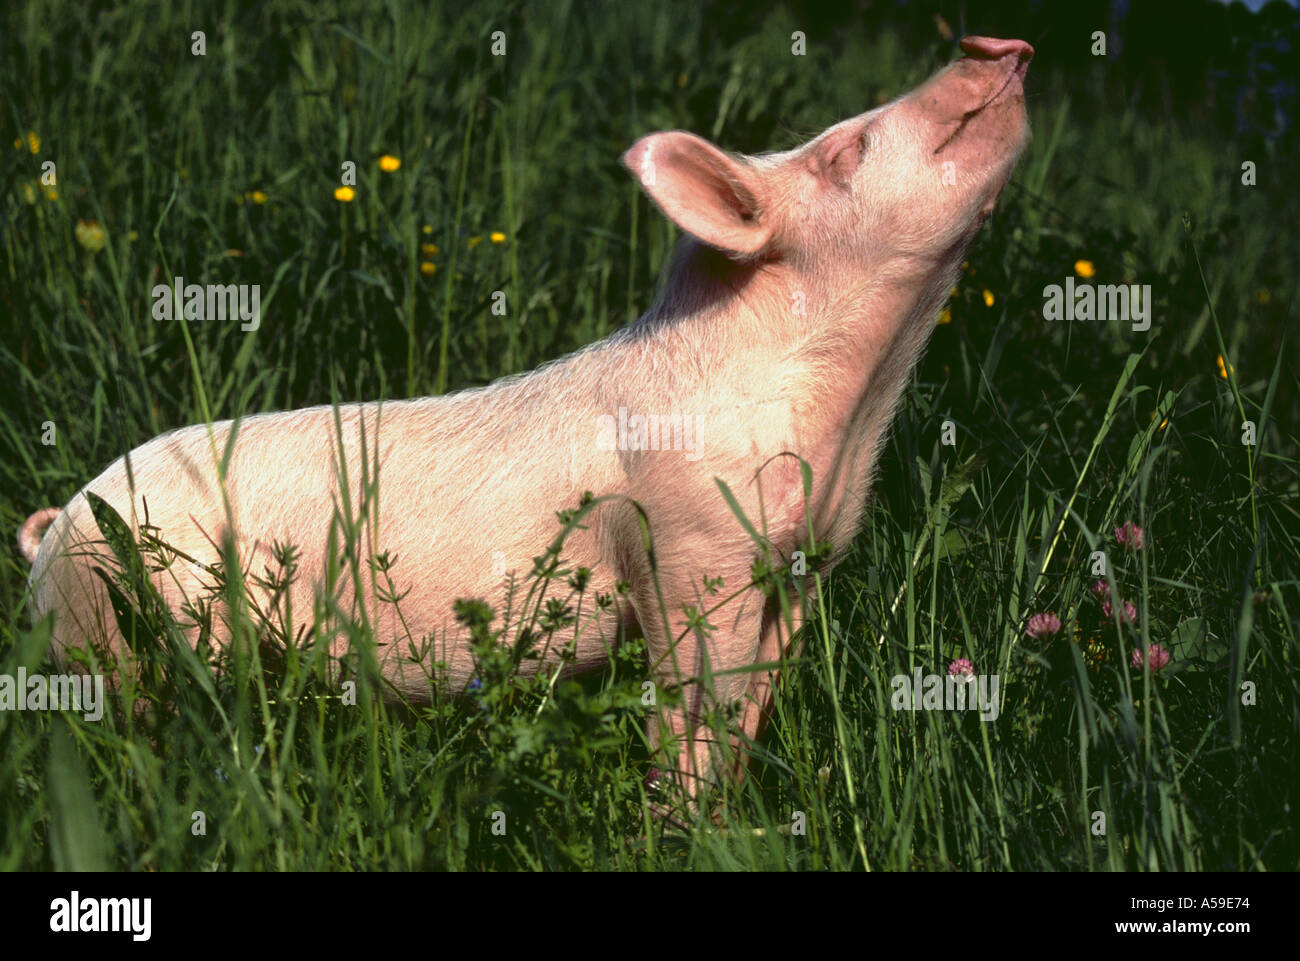 Piglet young pig animal animals creature creatures mammals mammal pig pigs piglet piglets outdoors Animal Farm - Stock Image